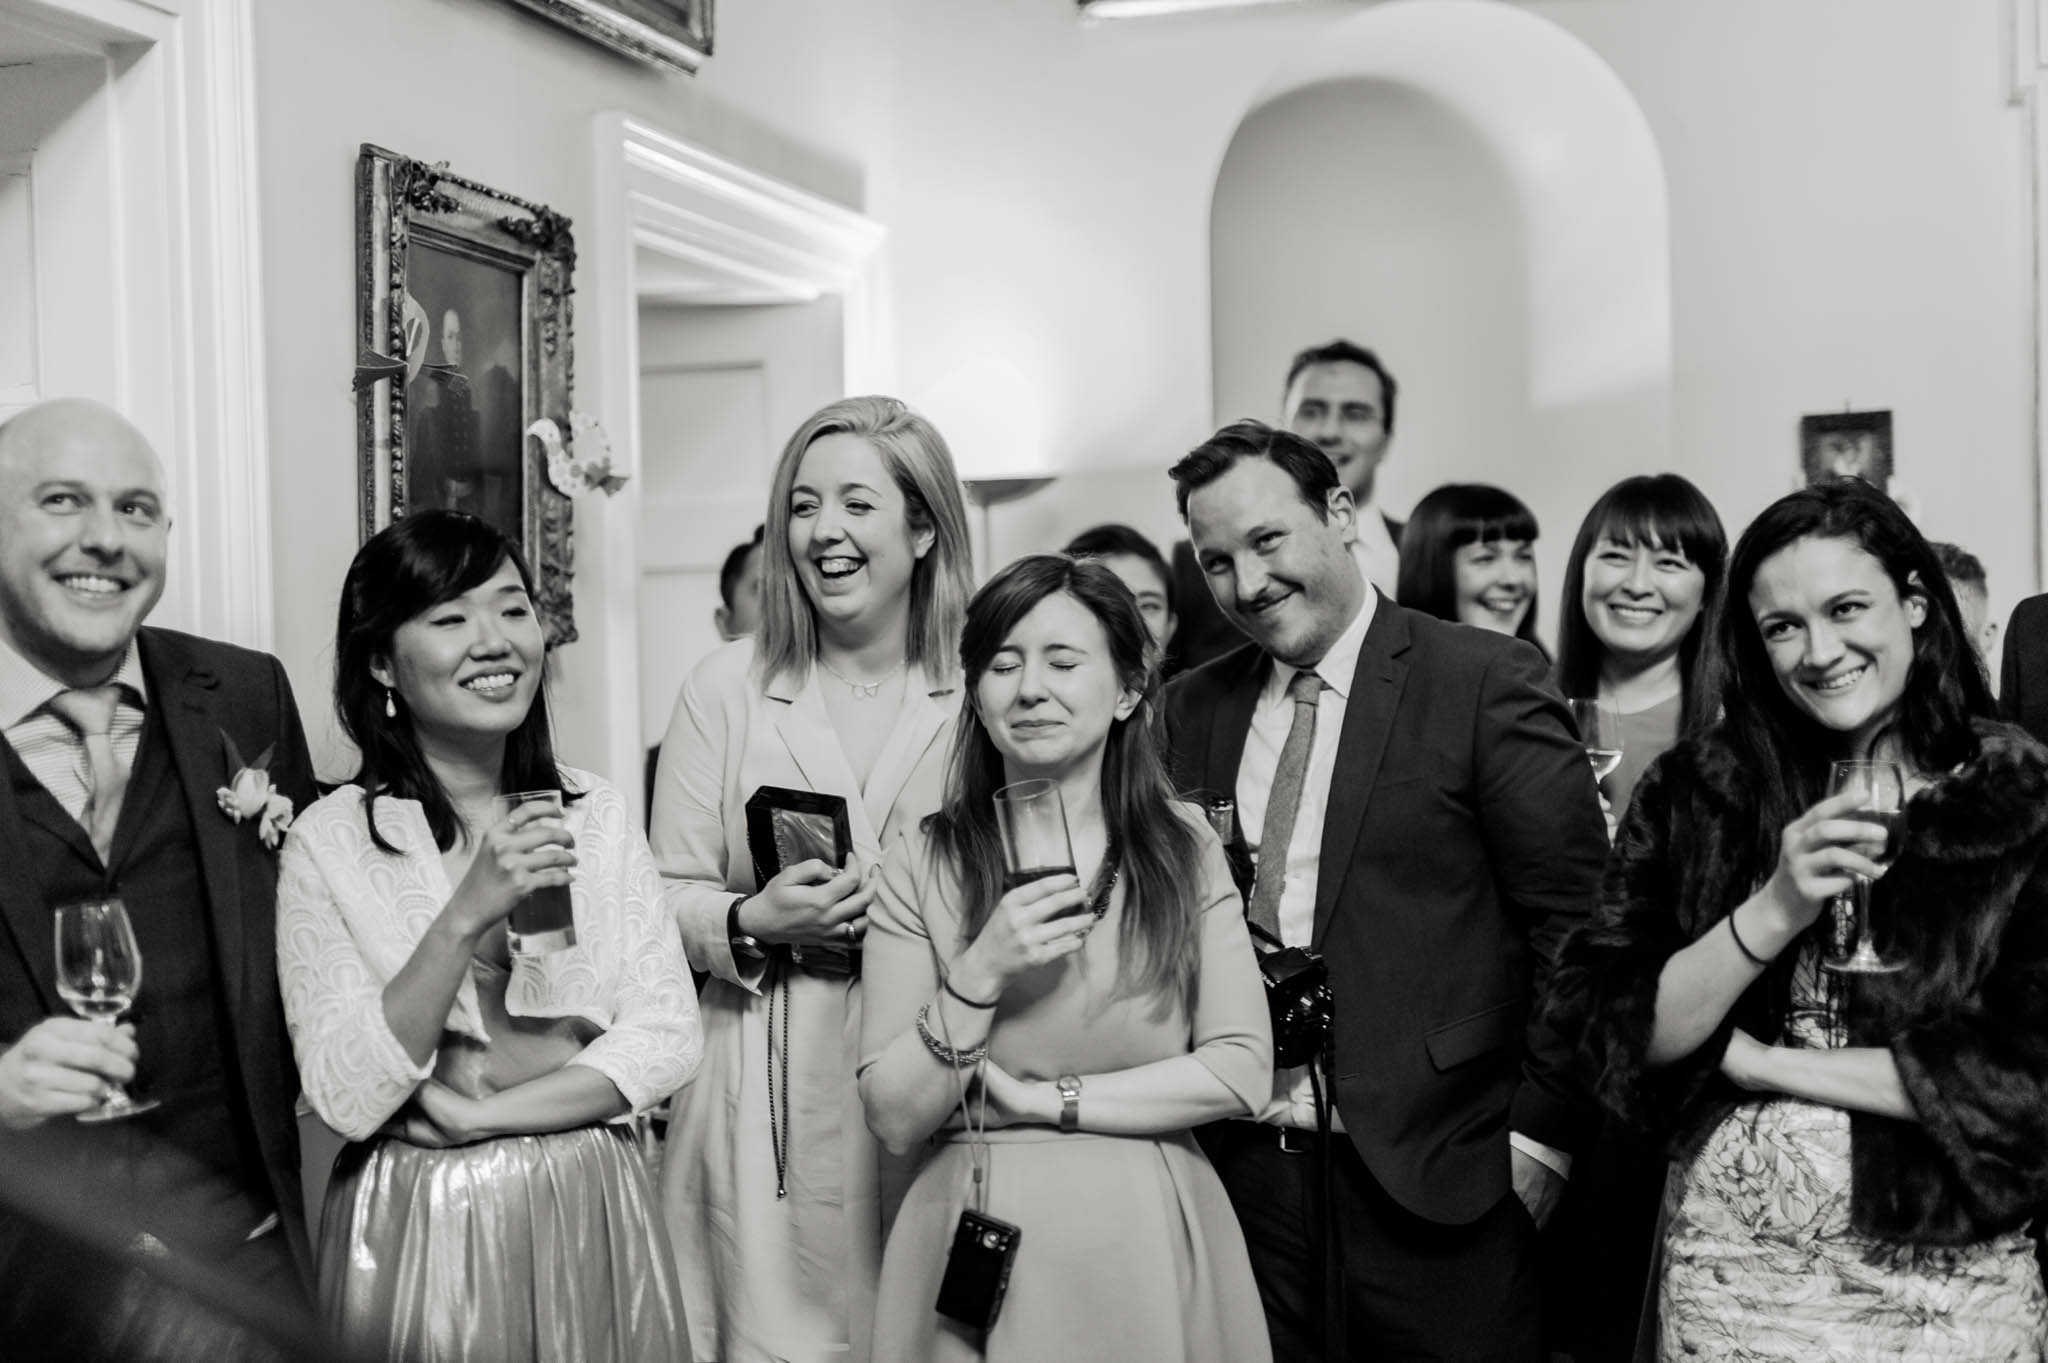 Cui & james Wedding at hill place-77